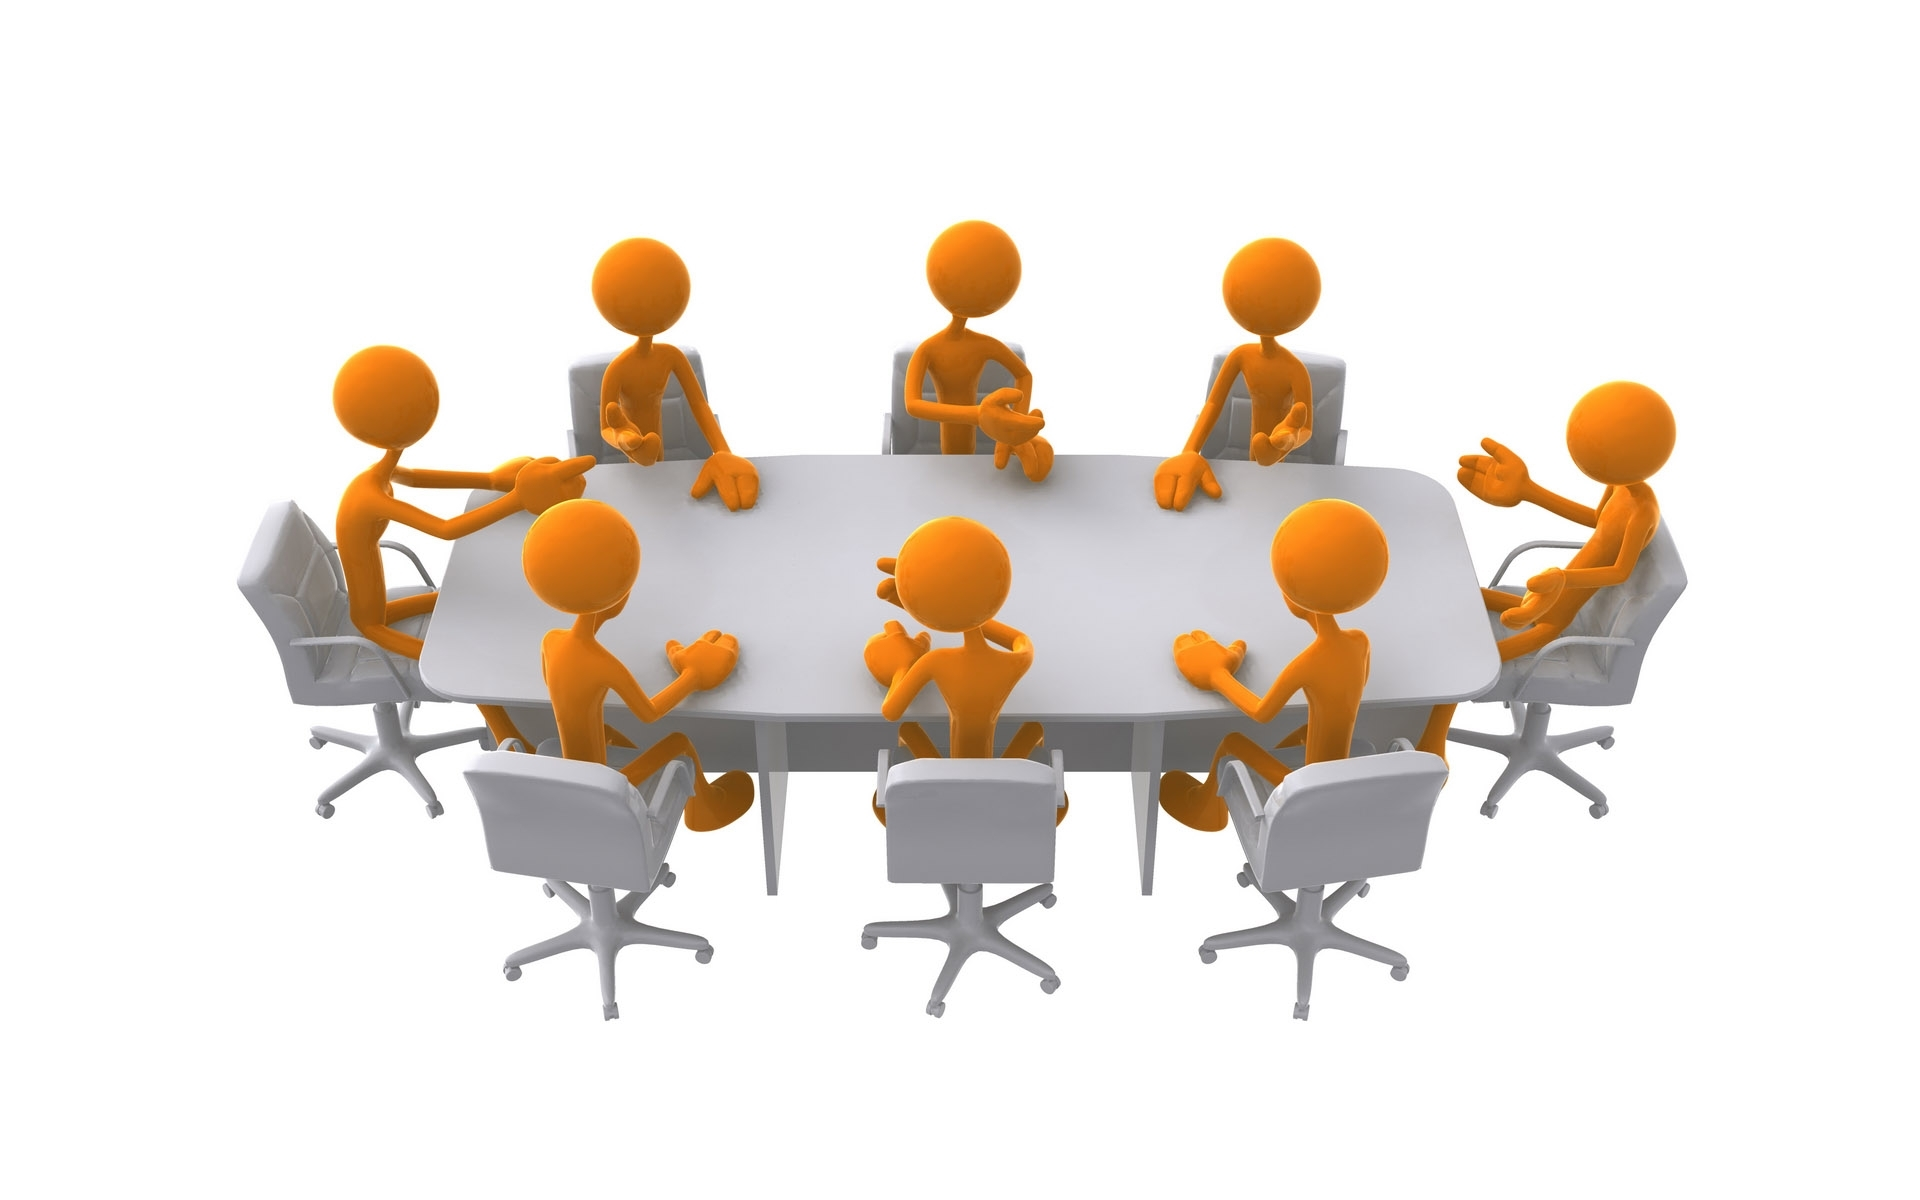 Meeting clipart 3 image #35064.